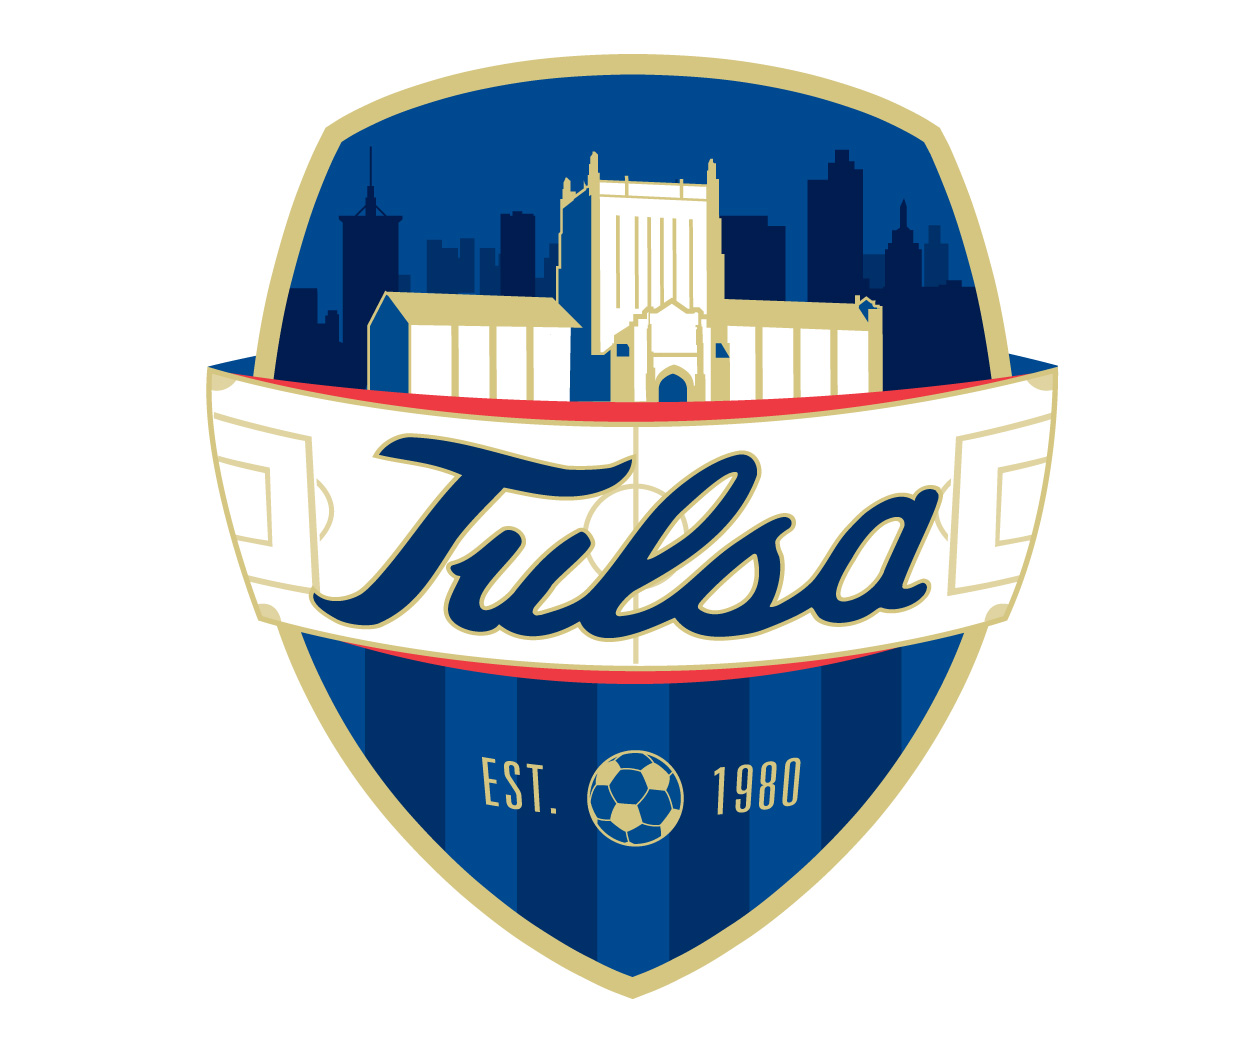 custom soccer logo design for tulsa university soccer by jordan fretz design